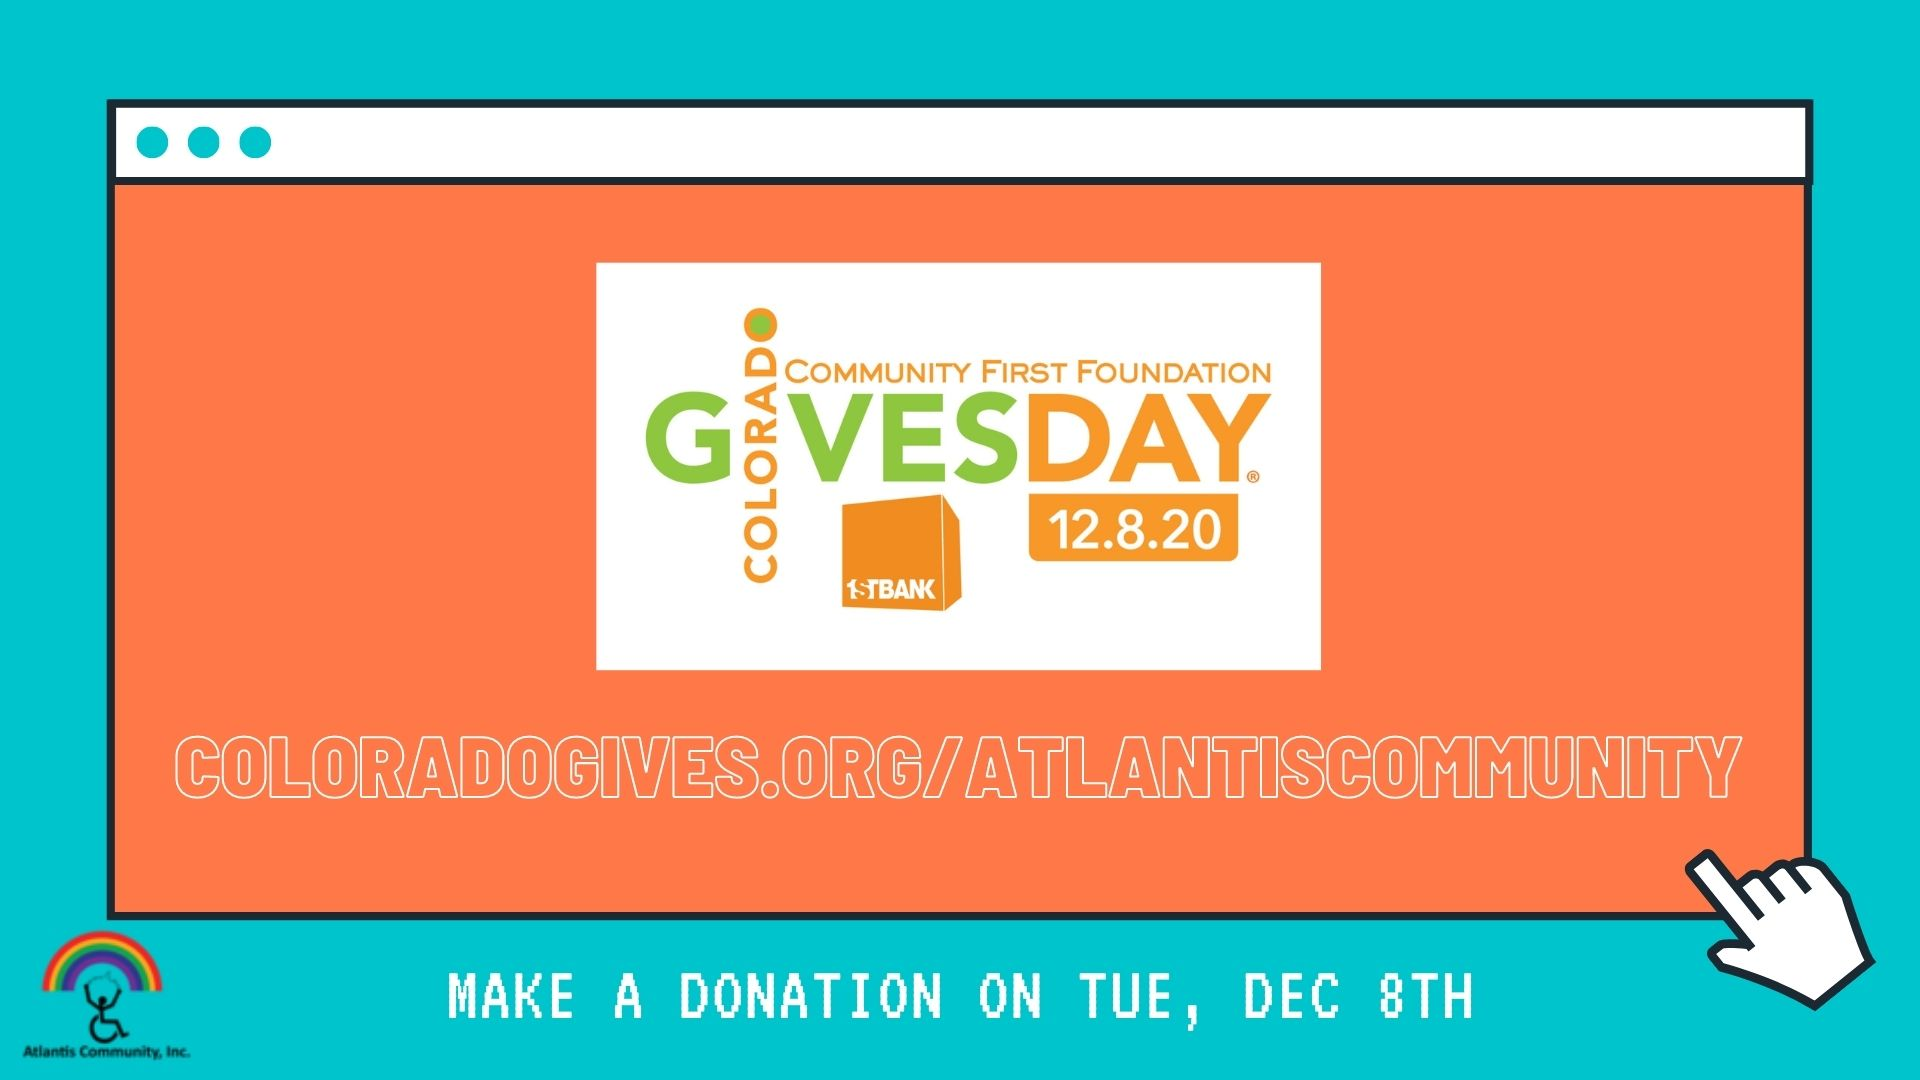 Image Description: A website window with an orange background, a white border, and teal buttons, Colorado Gives logo Community First Day, 12.8.20, 1st Bank logo of an orange cube., with a link https://www.coloradogives.org/AtlantisCommunity all against a teal background. A pointer finger mouse cursor is clicking on the window. The words, make a donation on Tue, Dec 8th are located at the bottom with the Atlantis Logo with a person in a wheelchair breaking chains underneath a colorful rainbow.